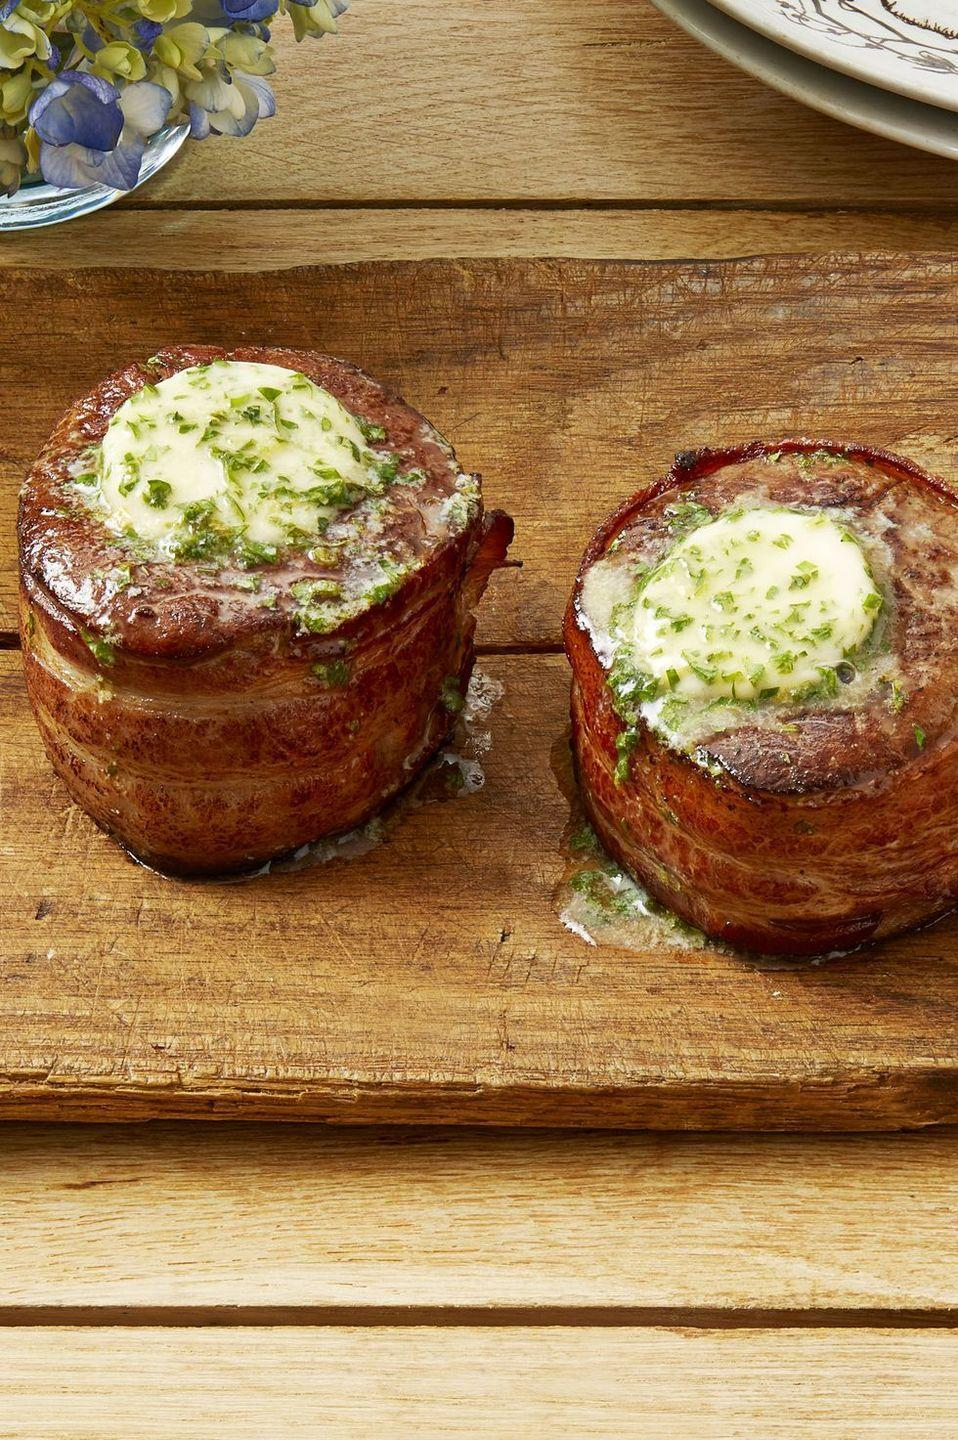 "<p>When it comes to honoring mom, steak is a must. These filets are bacon-wrapped, so they're even more delicious than your standard cuts.</p><p><strong><a href=""https://www.thepioneerwoman.com/food-cooking/recipes/a34226596/bacon-wrapped-filets-with-cowboy-butter/"" rel=""nofollow noopener"" target=""_blank"" data-ylk=""slk:Get the recipe"" class=""link rapid-noclick-resp"">Get the recipe</a>.</strong></p><p><strong><a class=""link rapid-noclick-resp"" href=""https://go.redirectingat.com?id=74968X1596630&url=https%3A%2F%2Fwww.walmart.com%2Fsearch%2F%3Fquery%3Dcookware&sref=https%3A%2F%2Fwww.thepioneerwoman.com%2Ffood-cooking%2Fmeals-menus%2Fg35589850%2Fmothers-day-dinner-ideas%2F"" rel=""nofollow noopener"" target=""_blank"" data-ylk=""slk:SHOP COOKWARE"">SHOP COOKWARE</a></strong></p>"